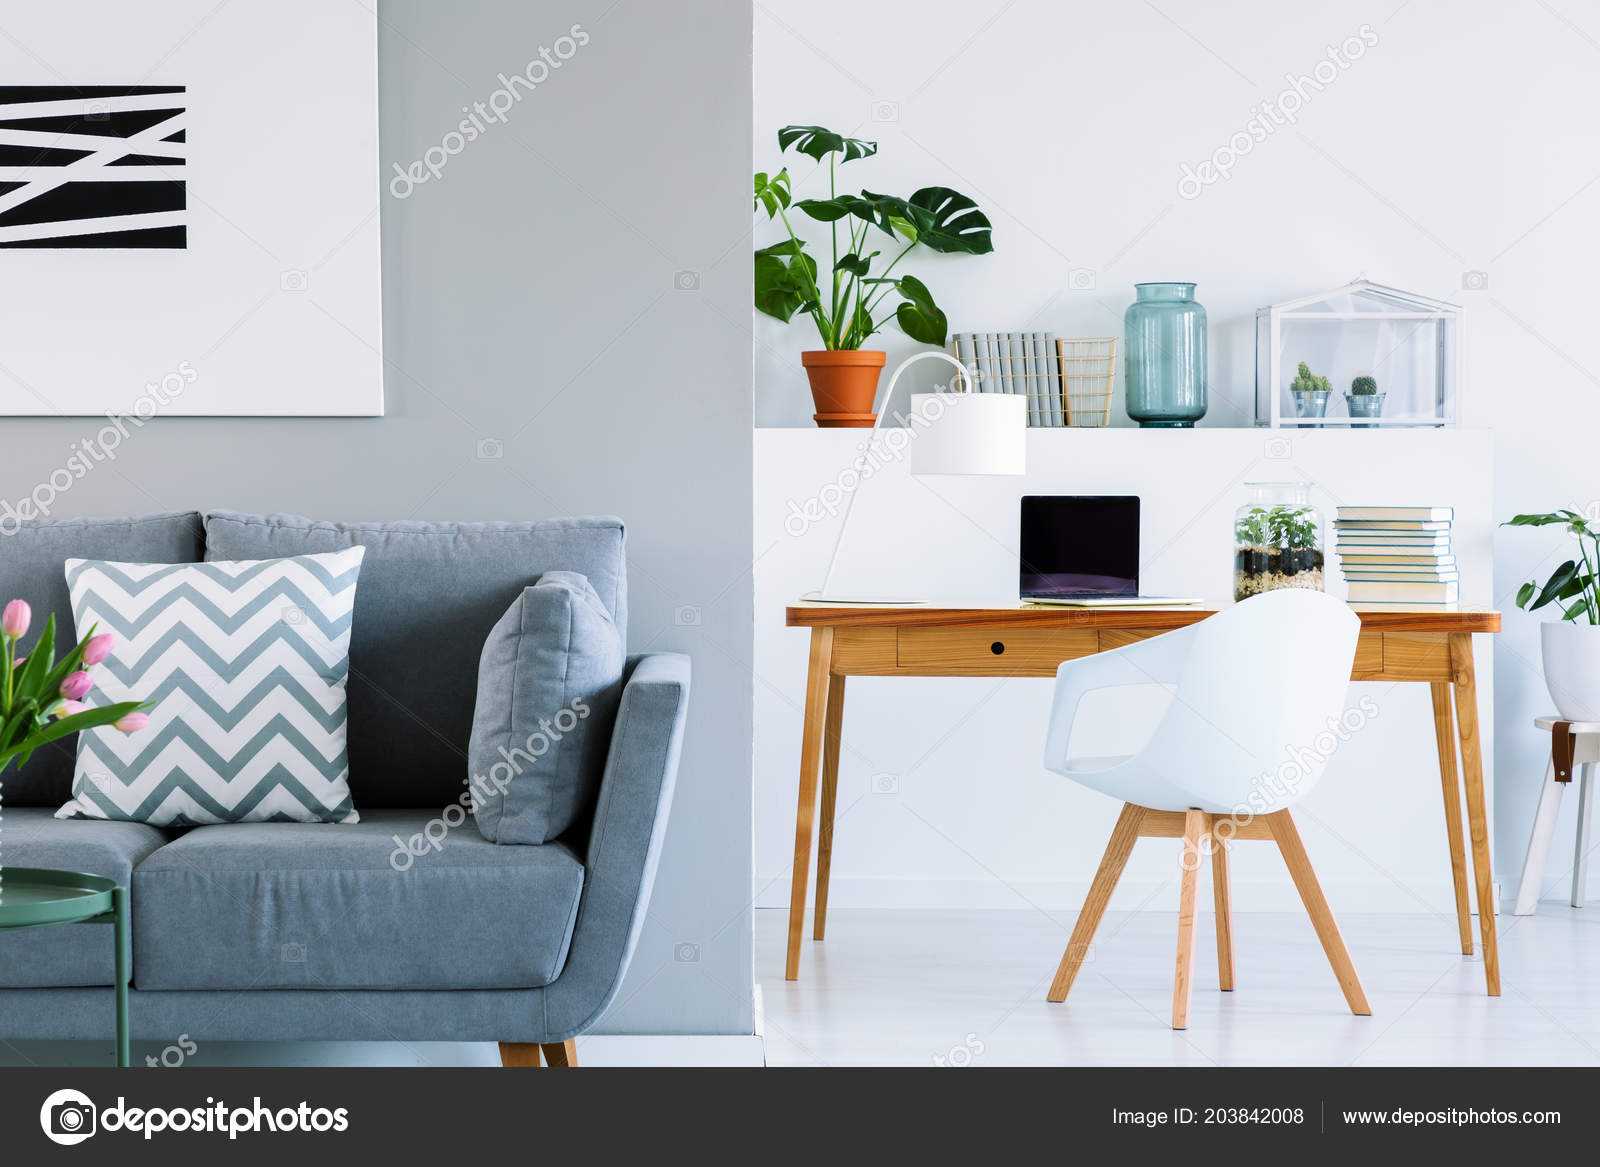 Sofa In Home Office Patterned Cushion Grey Sofa Scandinavian Home Office